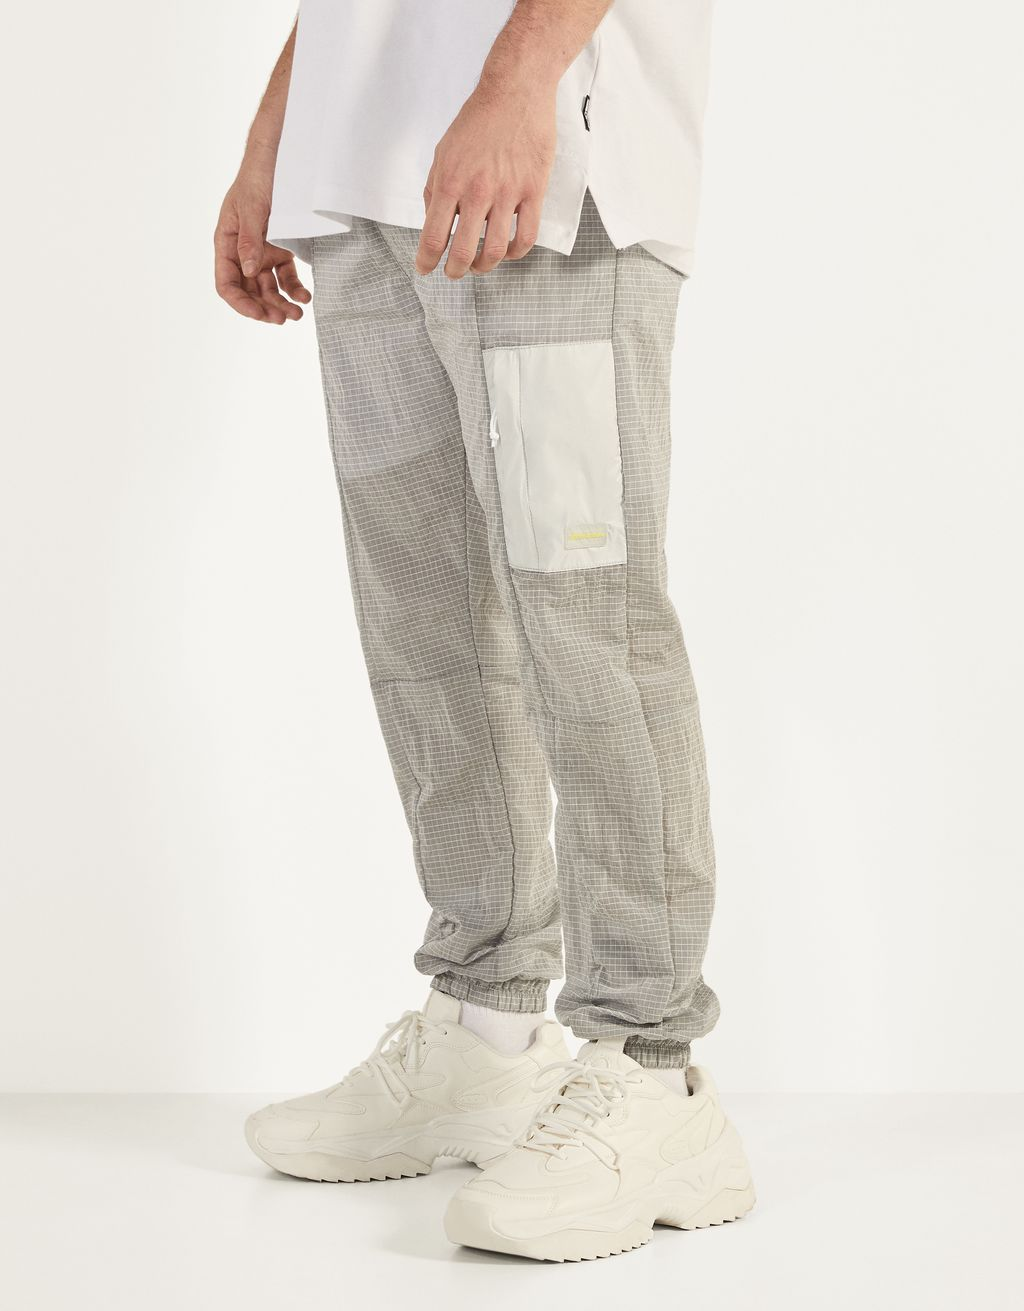 Jogging trousers with a reflective pocket